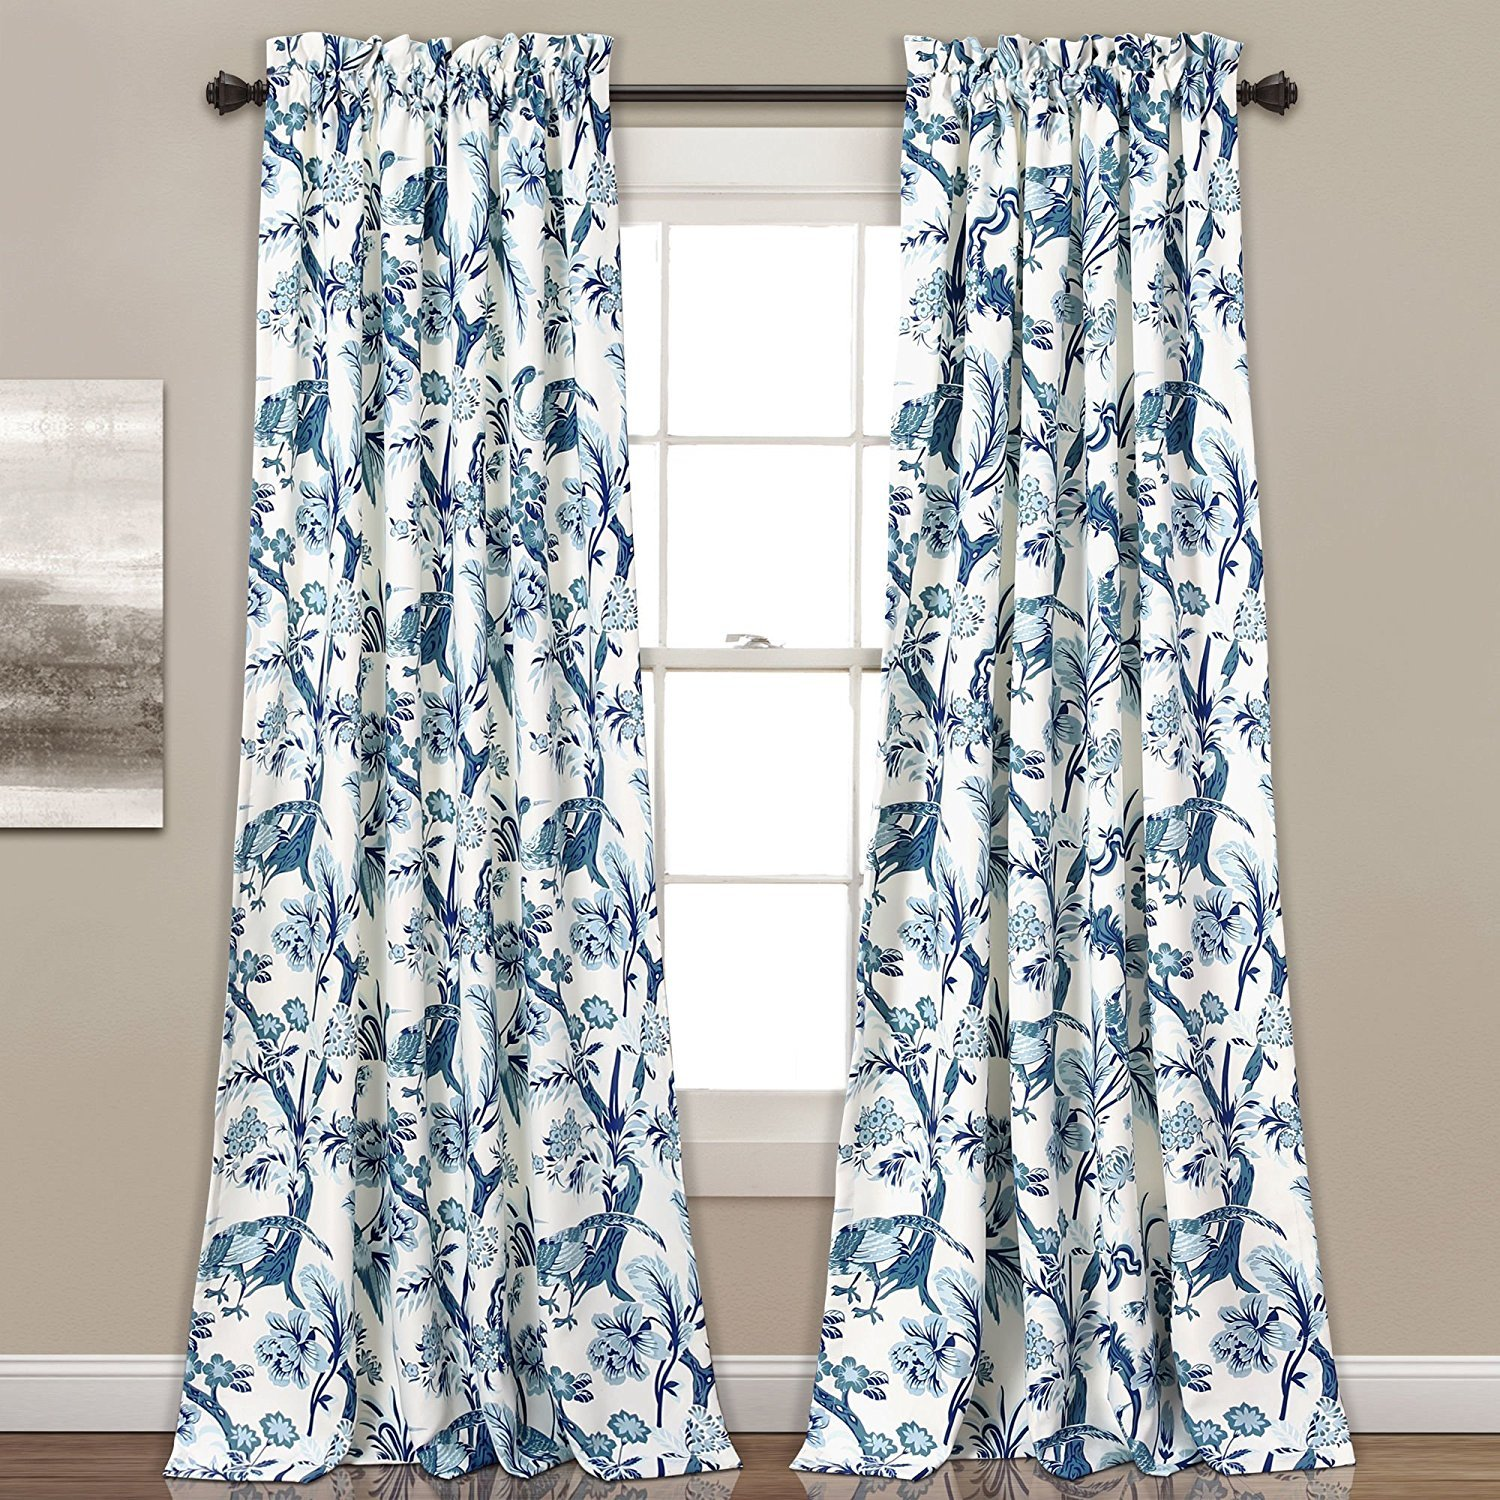 Nil 2pc 84 Girls Blue Color Floral Curtain Panel Pair, Kids Themed Animal Energy Efficient Room Darkening Rod Pocket Playful Luxurious, White Color Window Drapes, Polyester by Nil (Image #1)